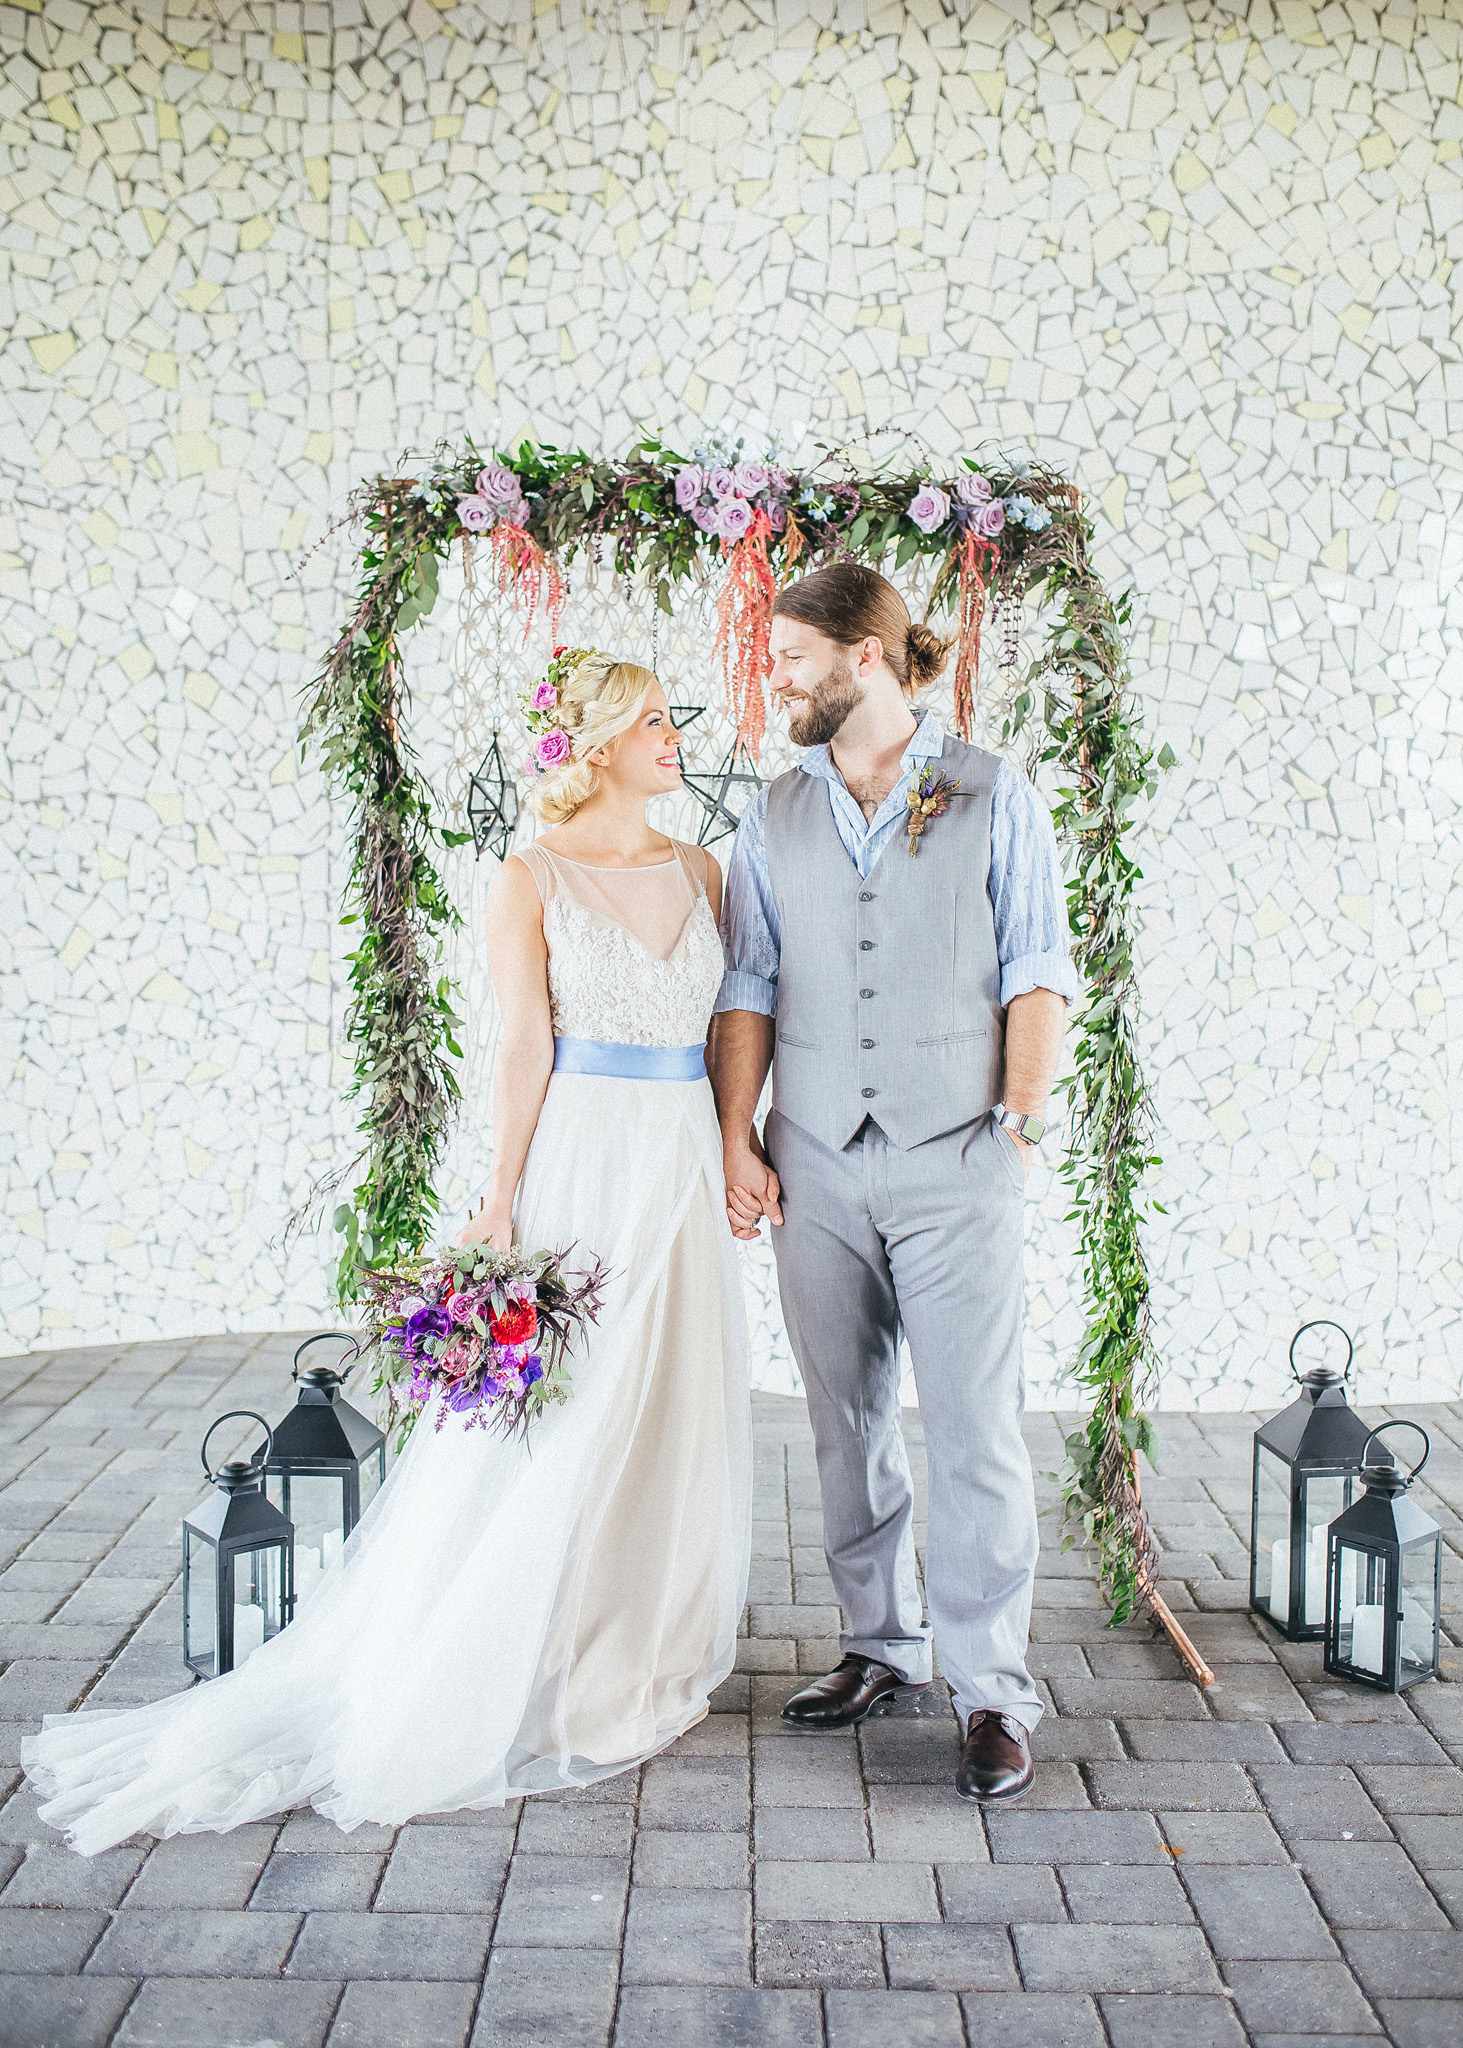 View More: http://radred.pass.us/findingforeverland-styledshoot